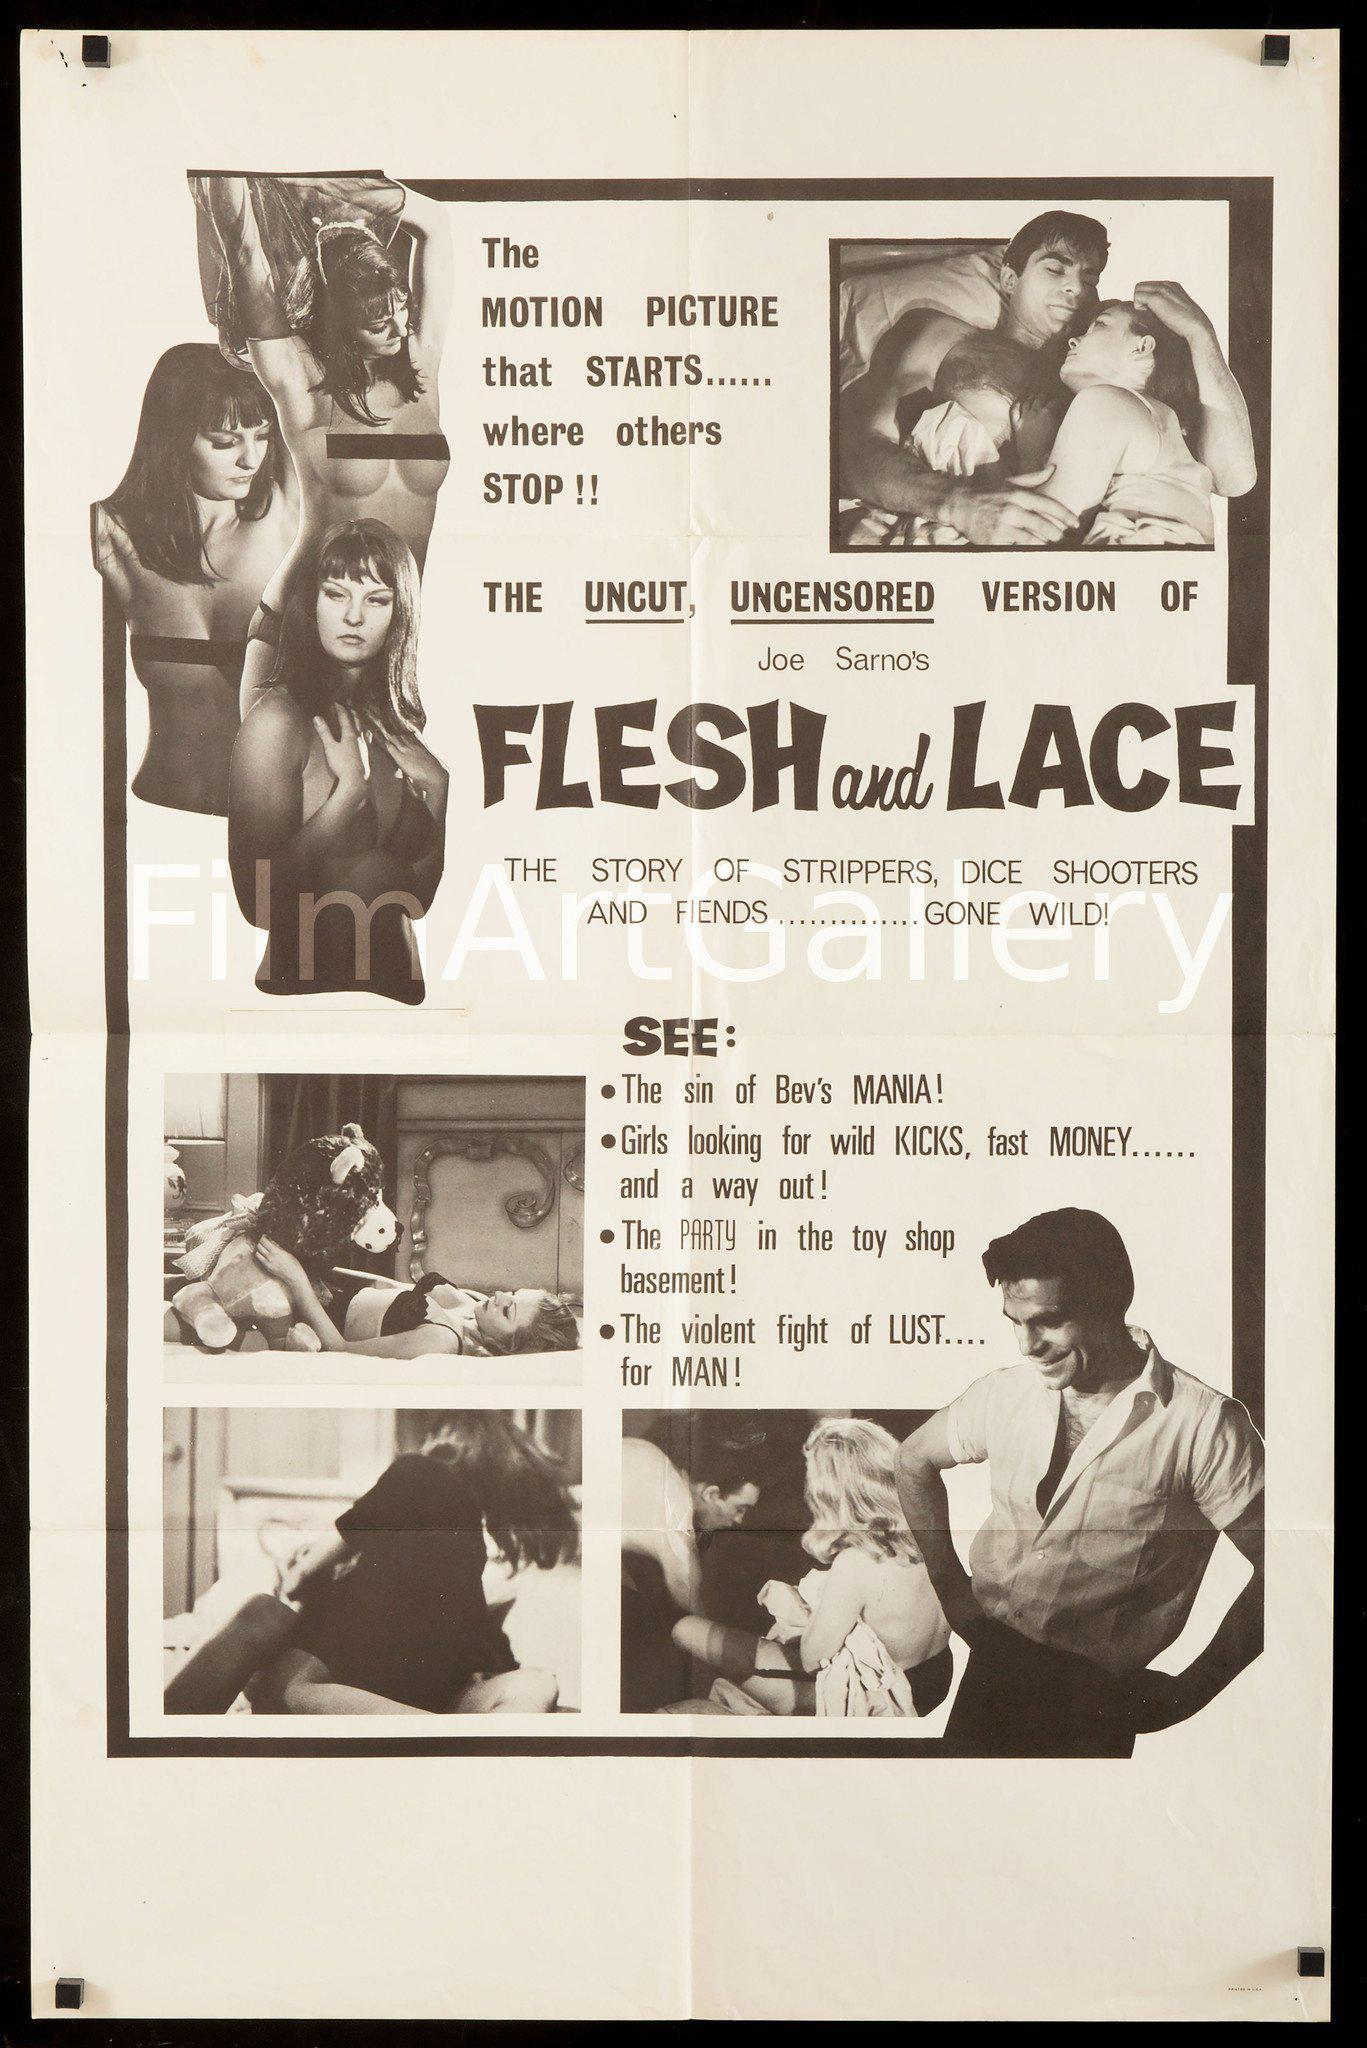 Flesh and Lace 1 Sheet (27x41) Original Vintage Movie Poster